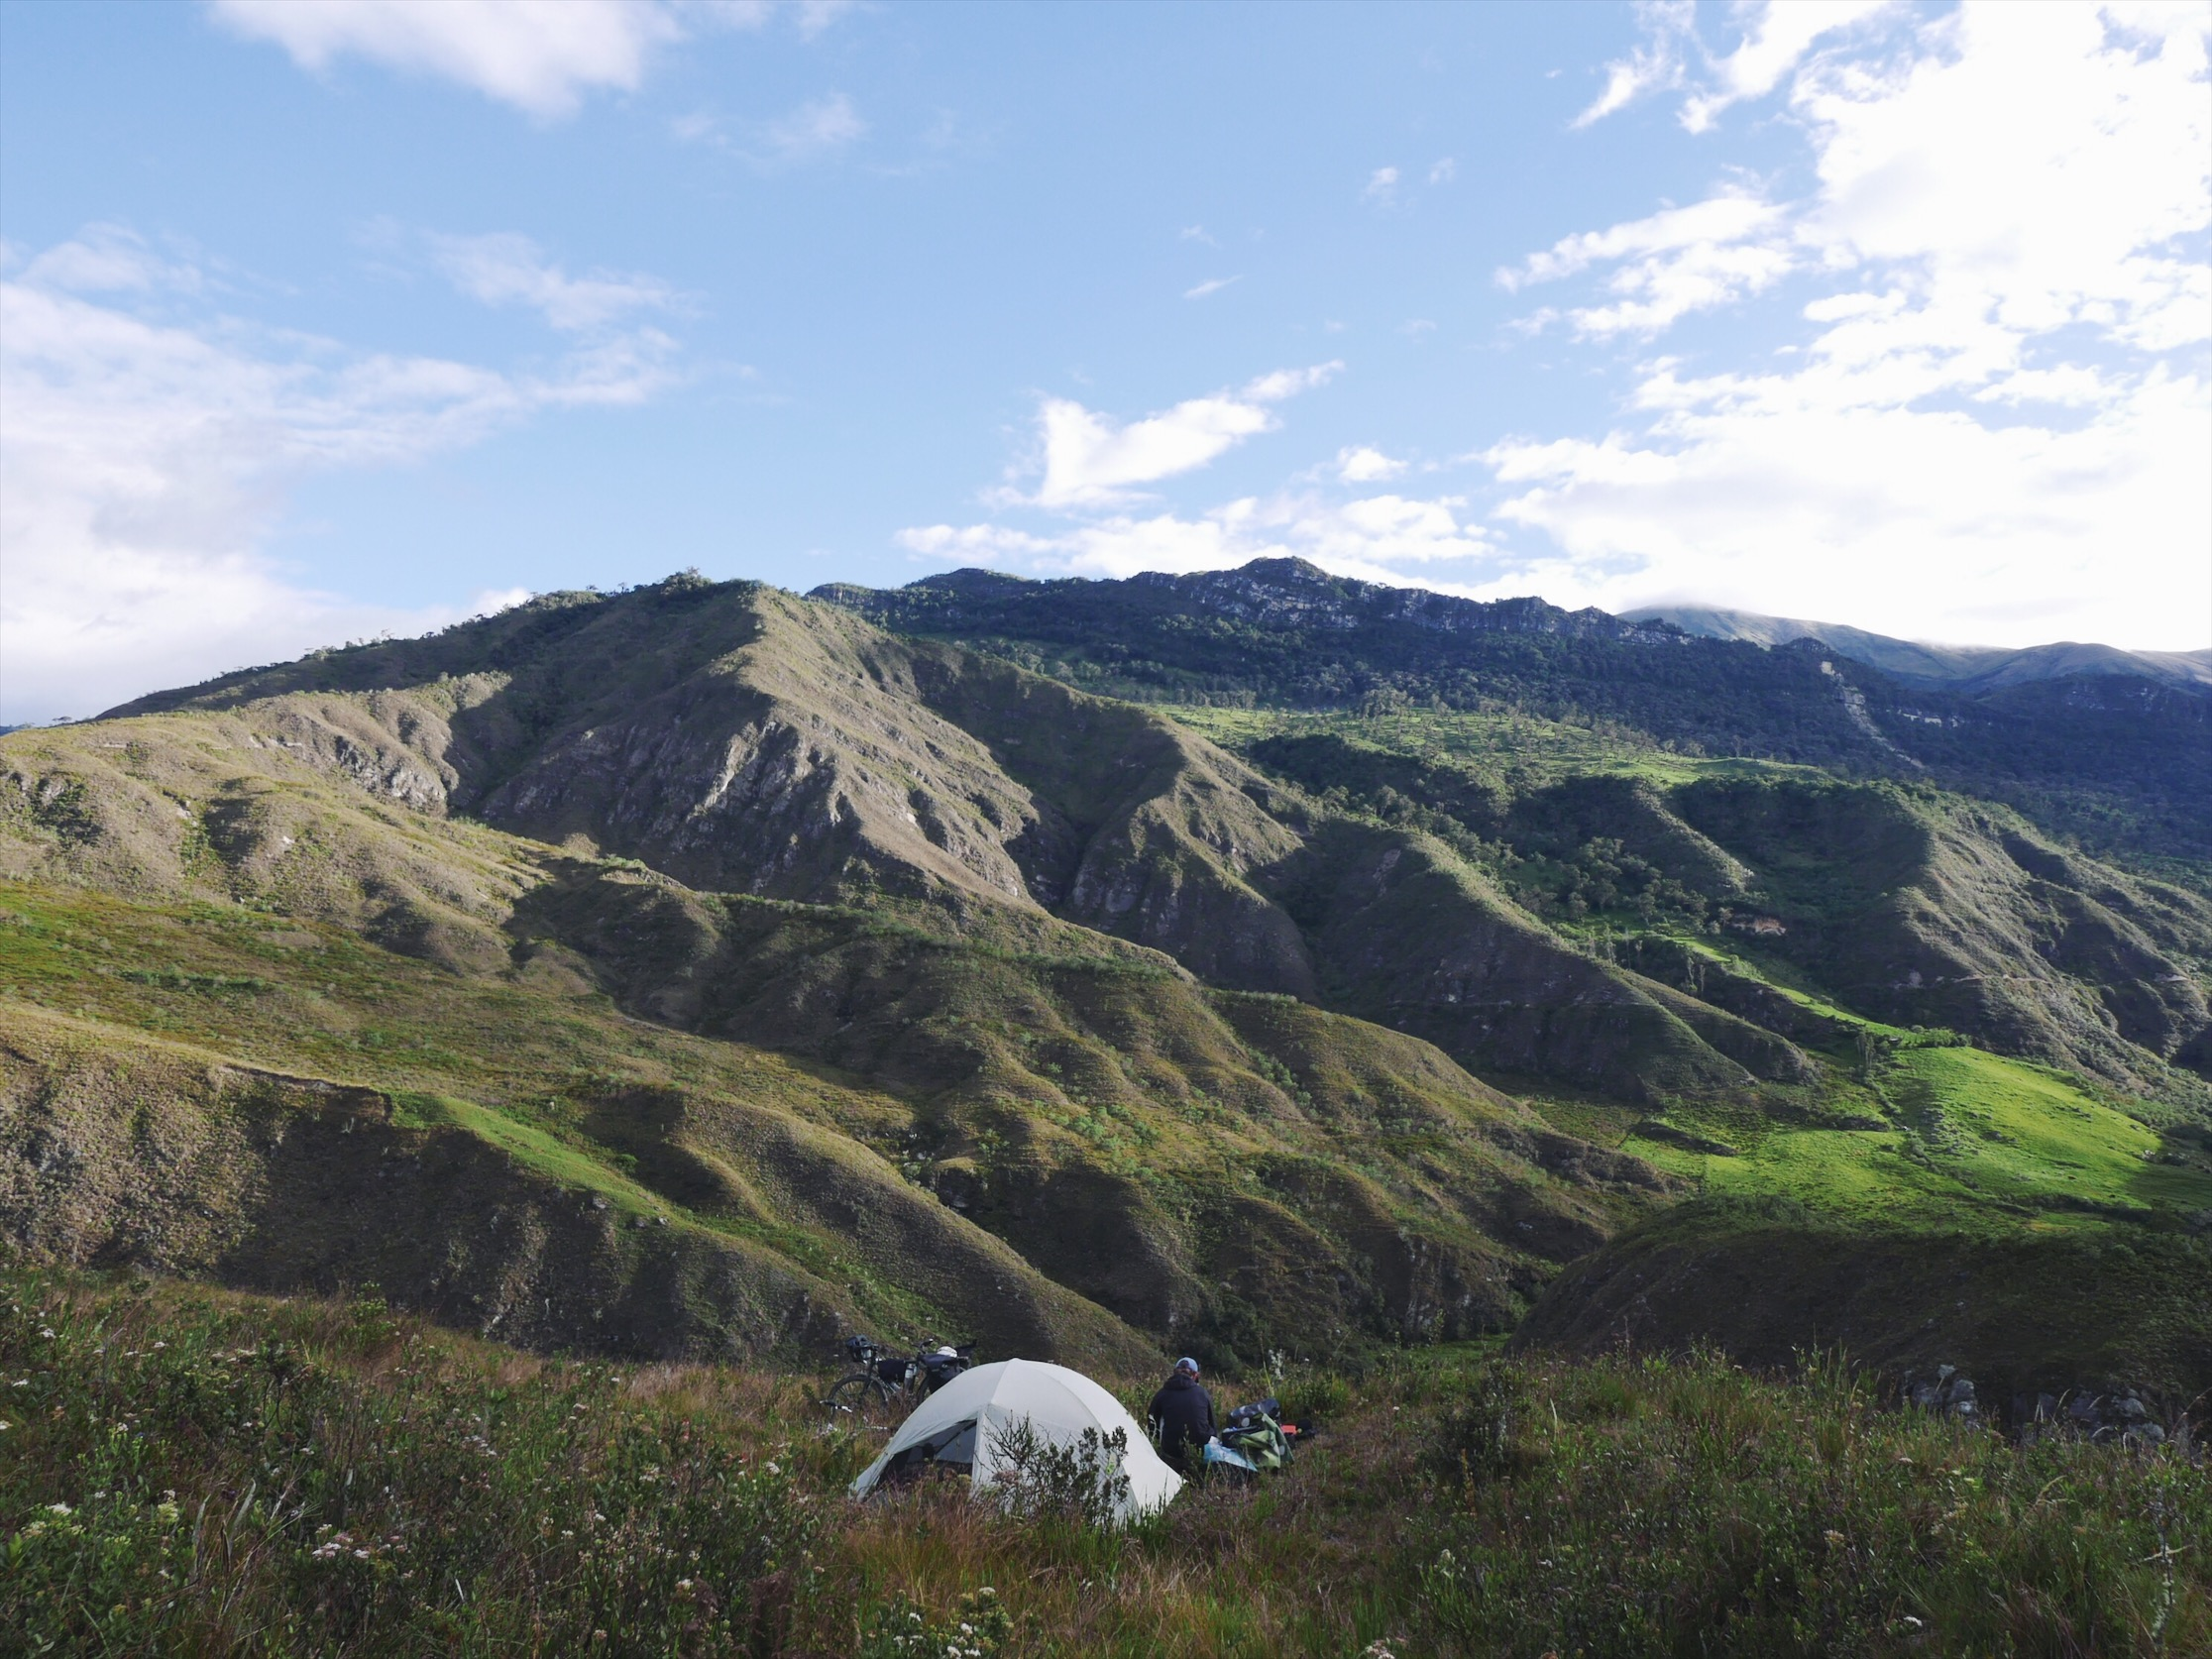 Although land-mined with cow shit and air mattress-popping twigs, an excellent campsite overall.